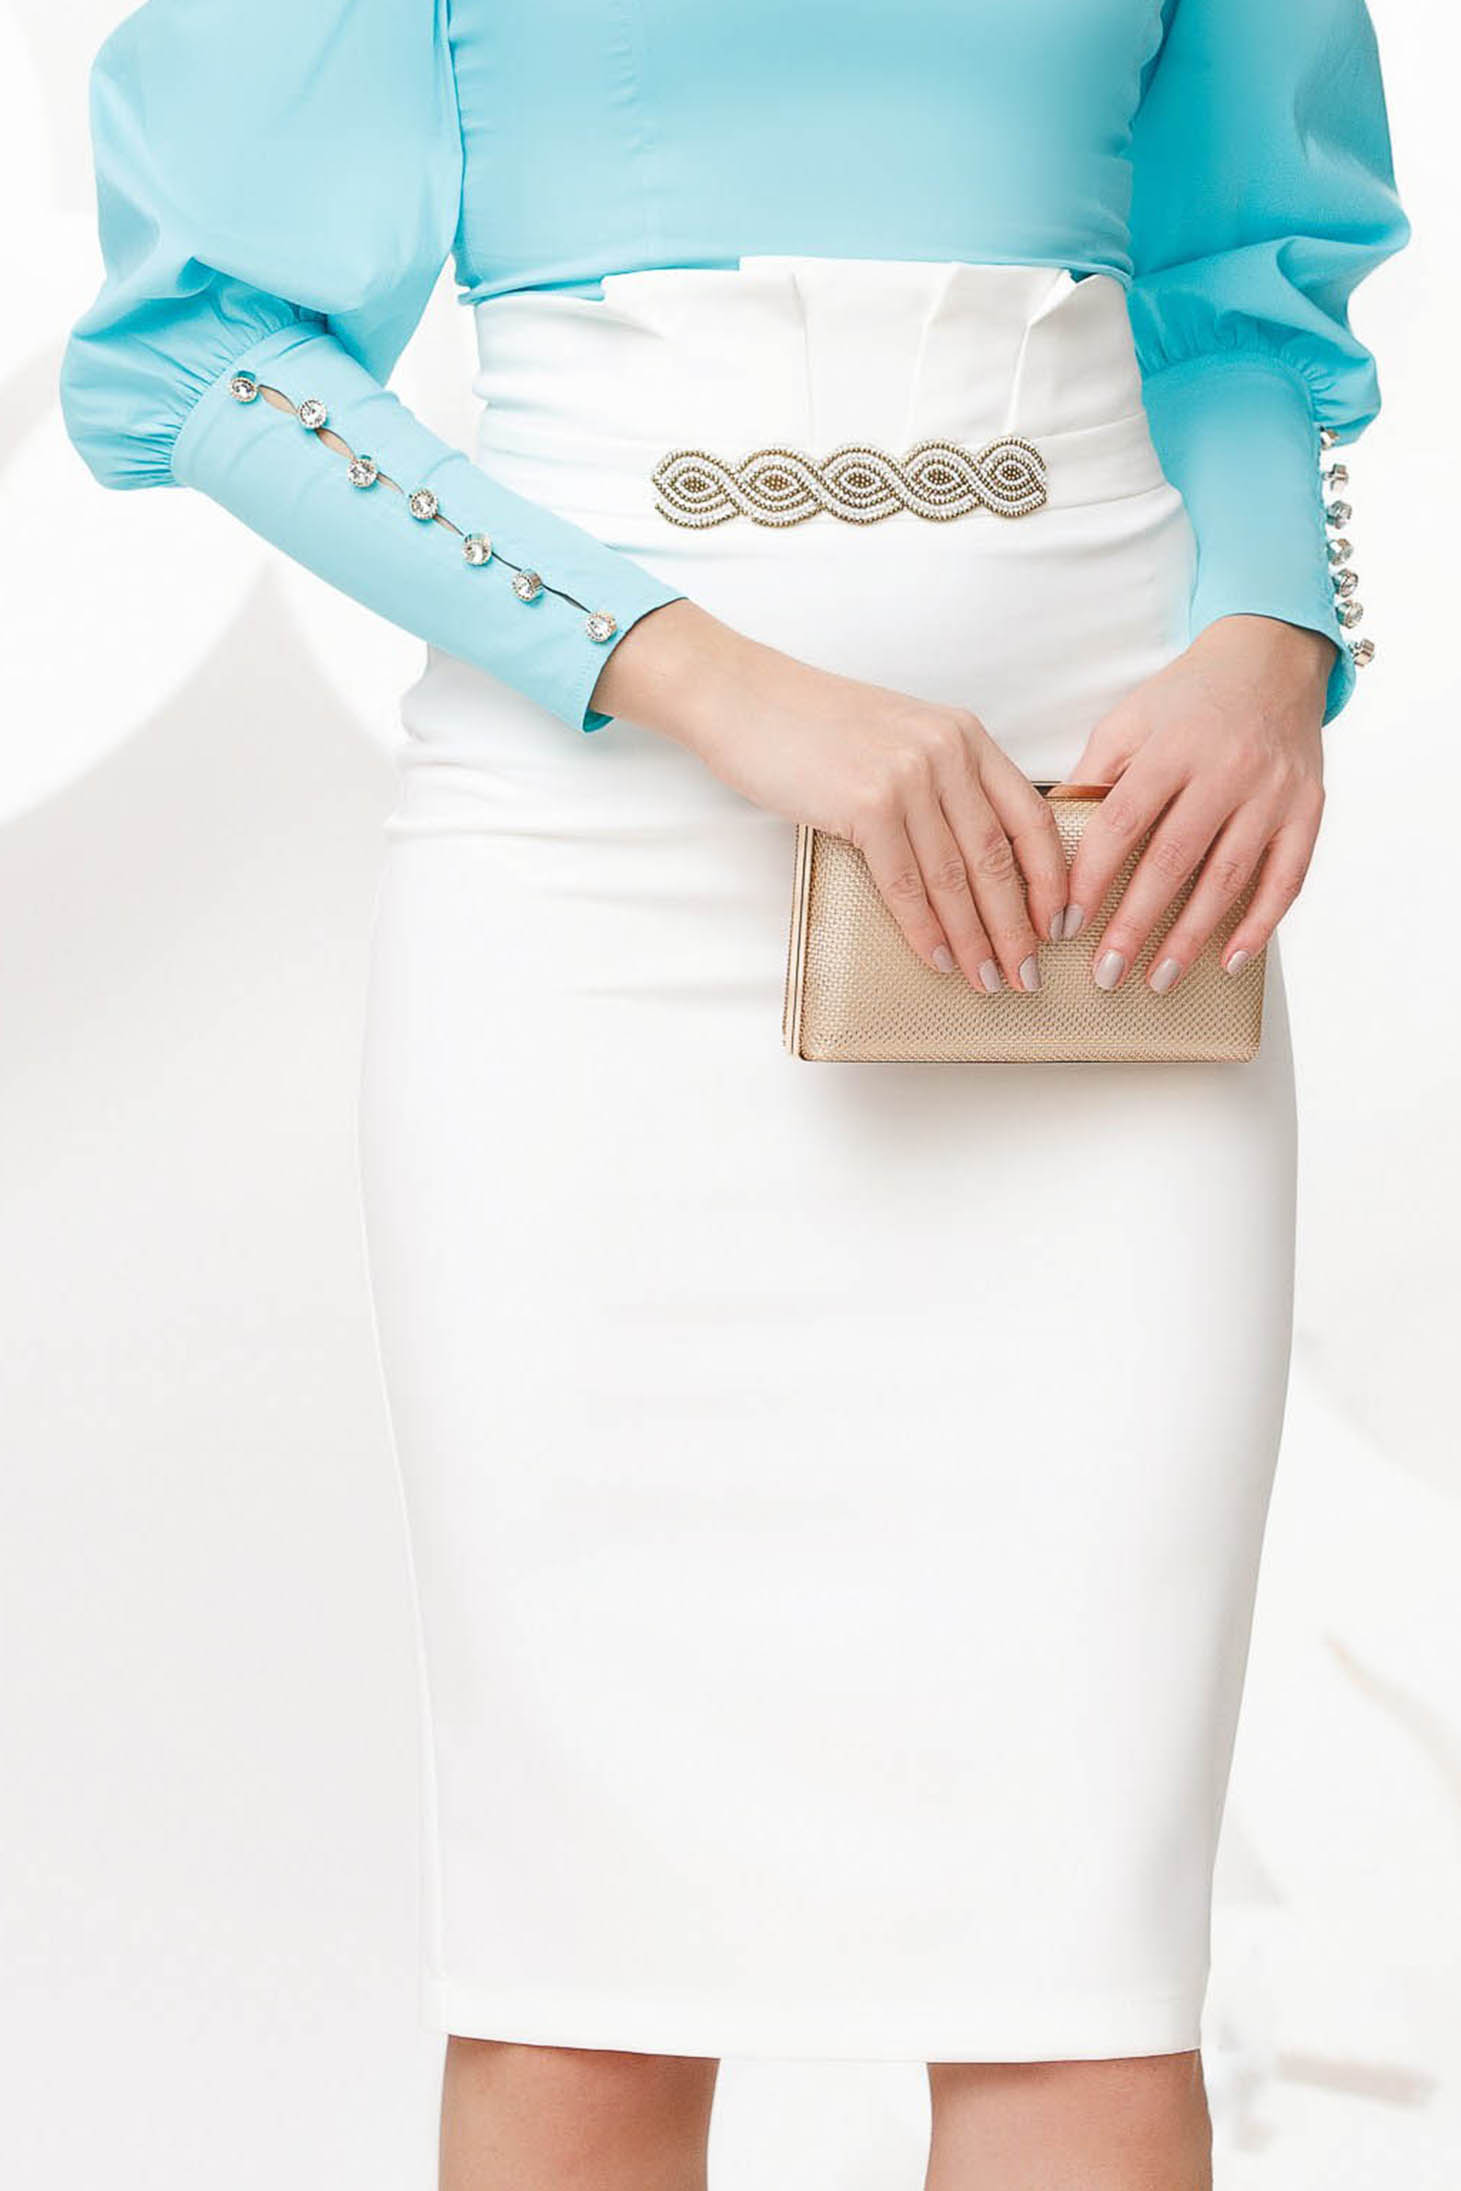 White skirt pencil high waisted elegant with embellished accessories